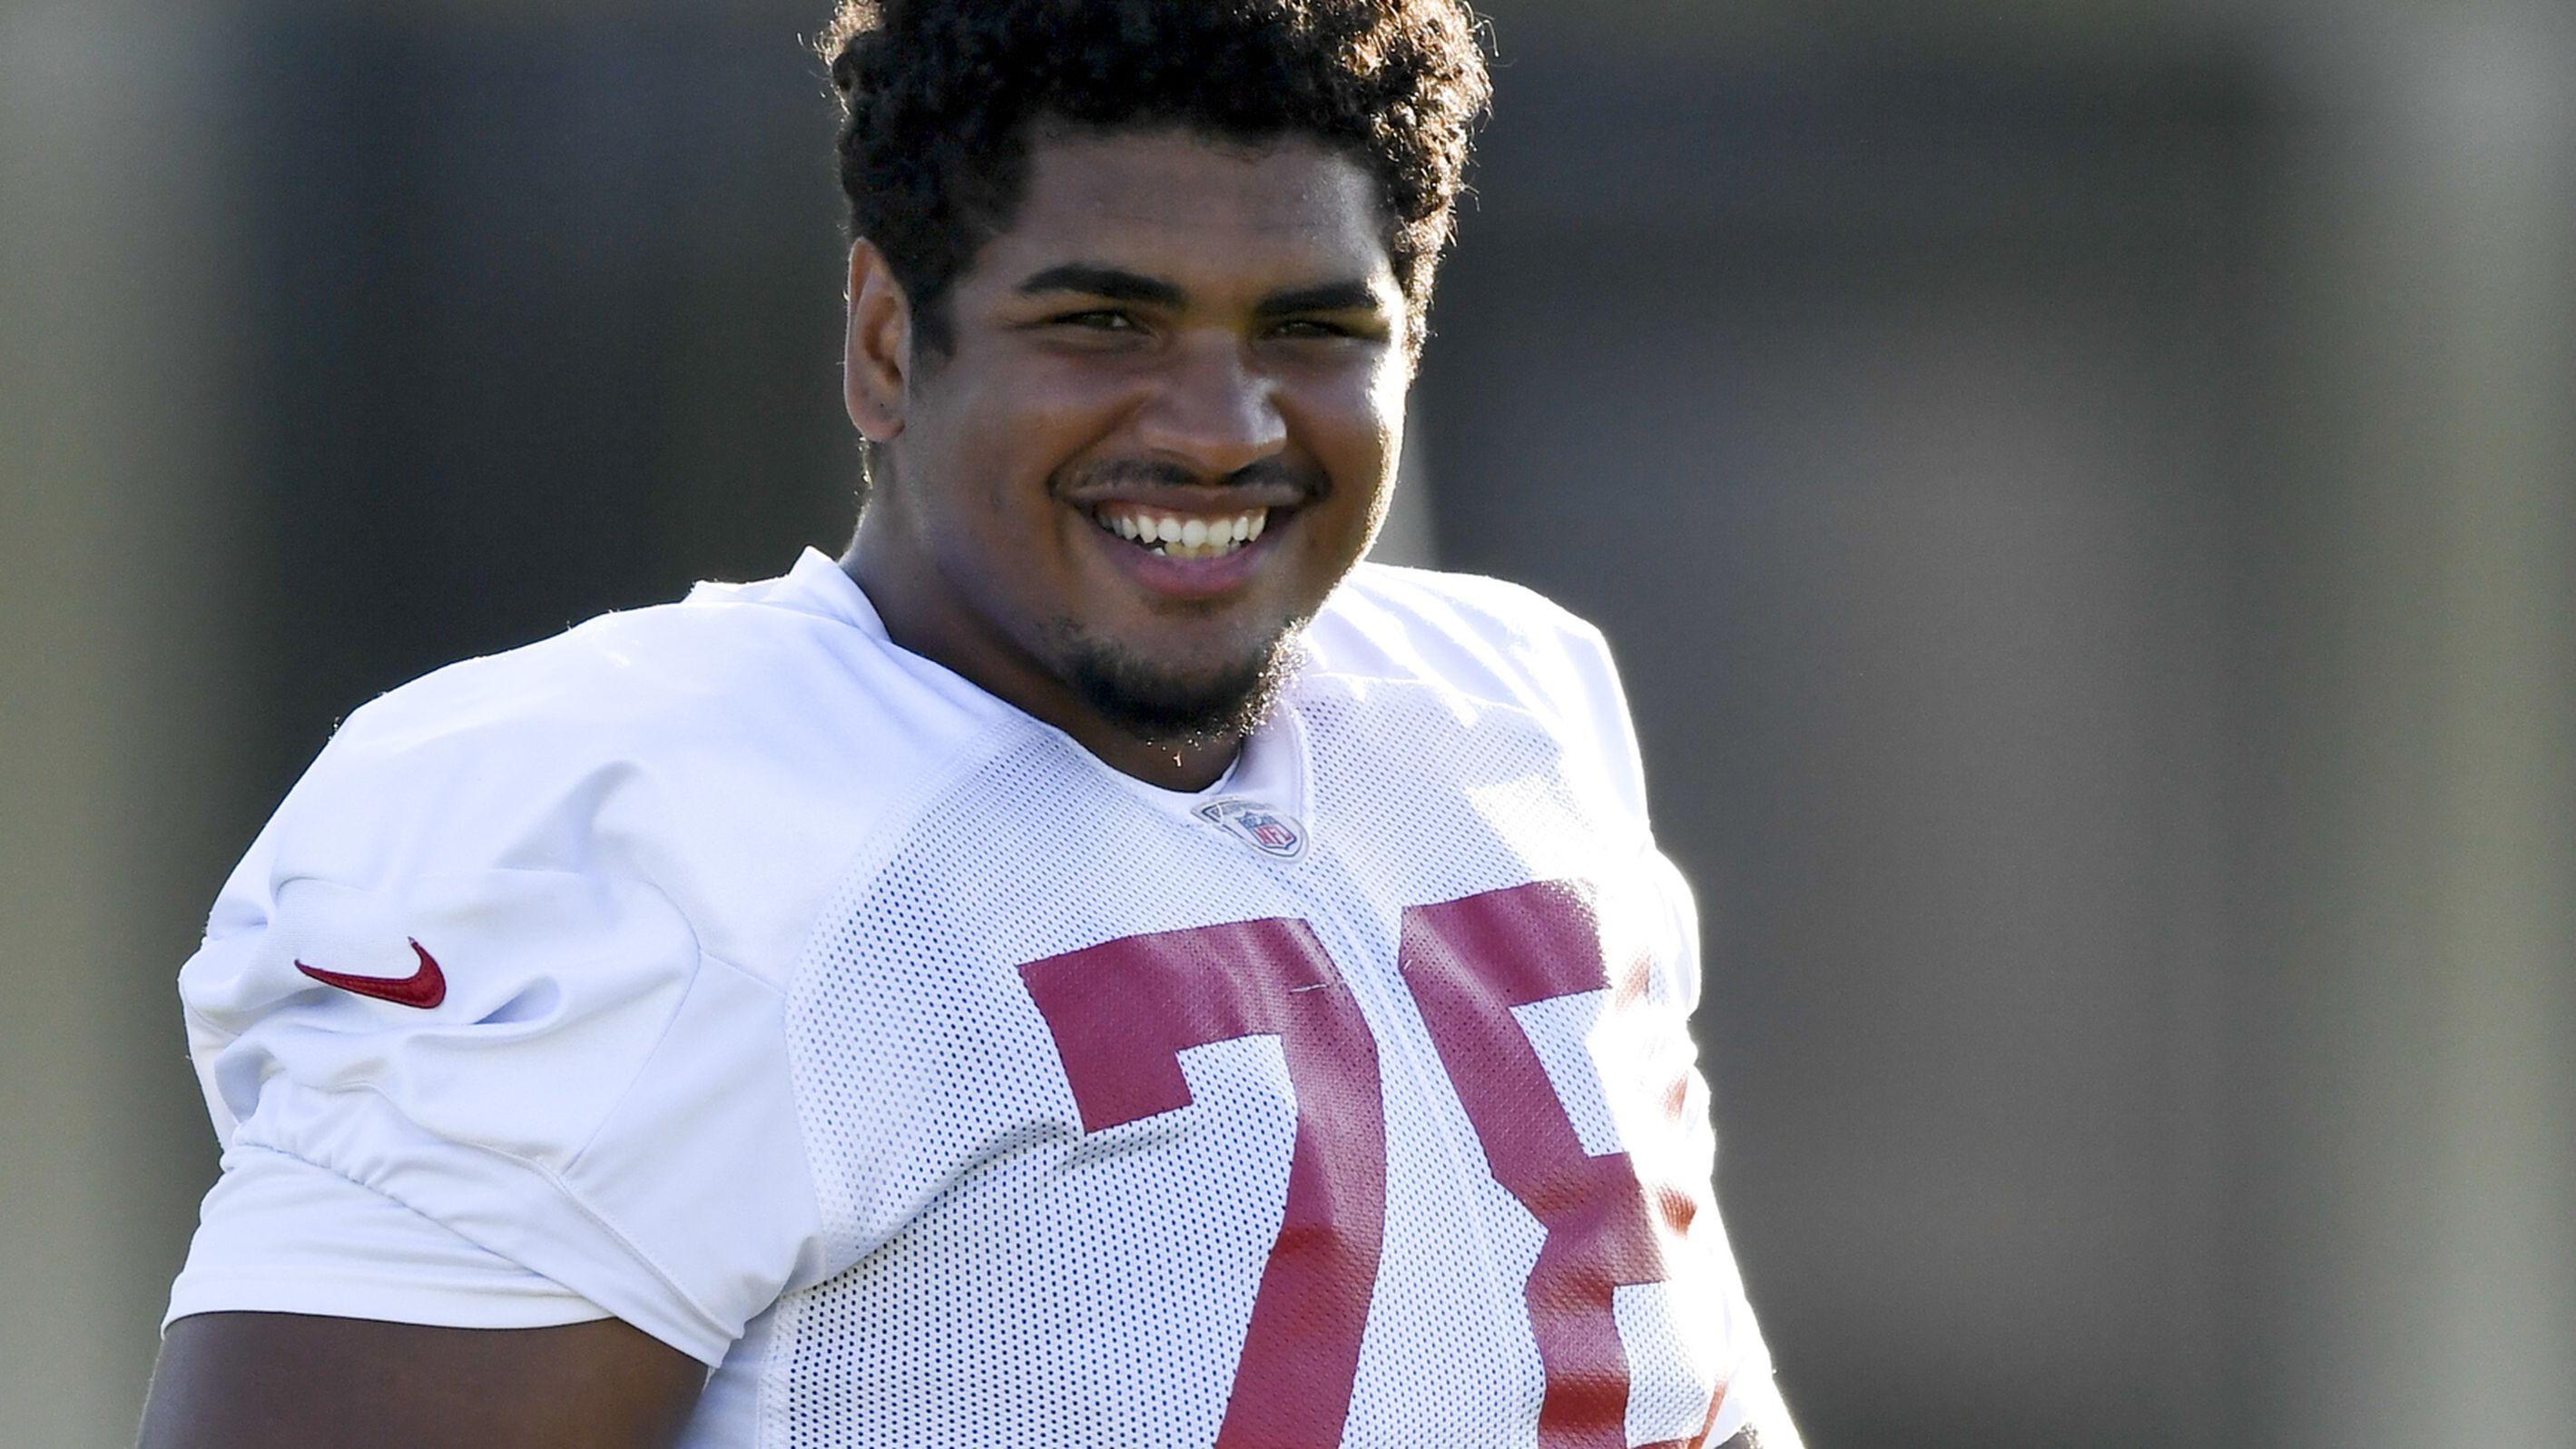 NFL rookie monster Tristan Wirfs eats a ridiculous amount of food every day